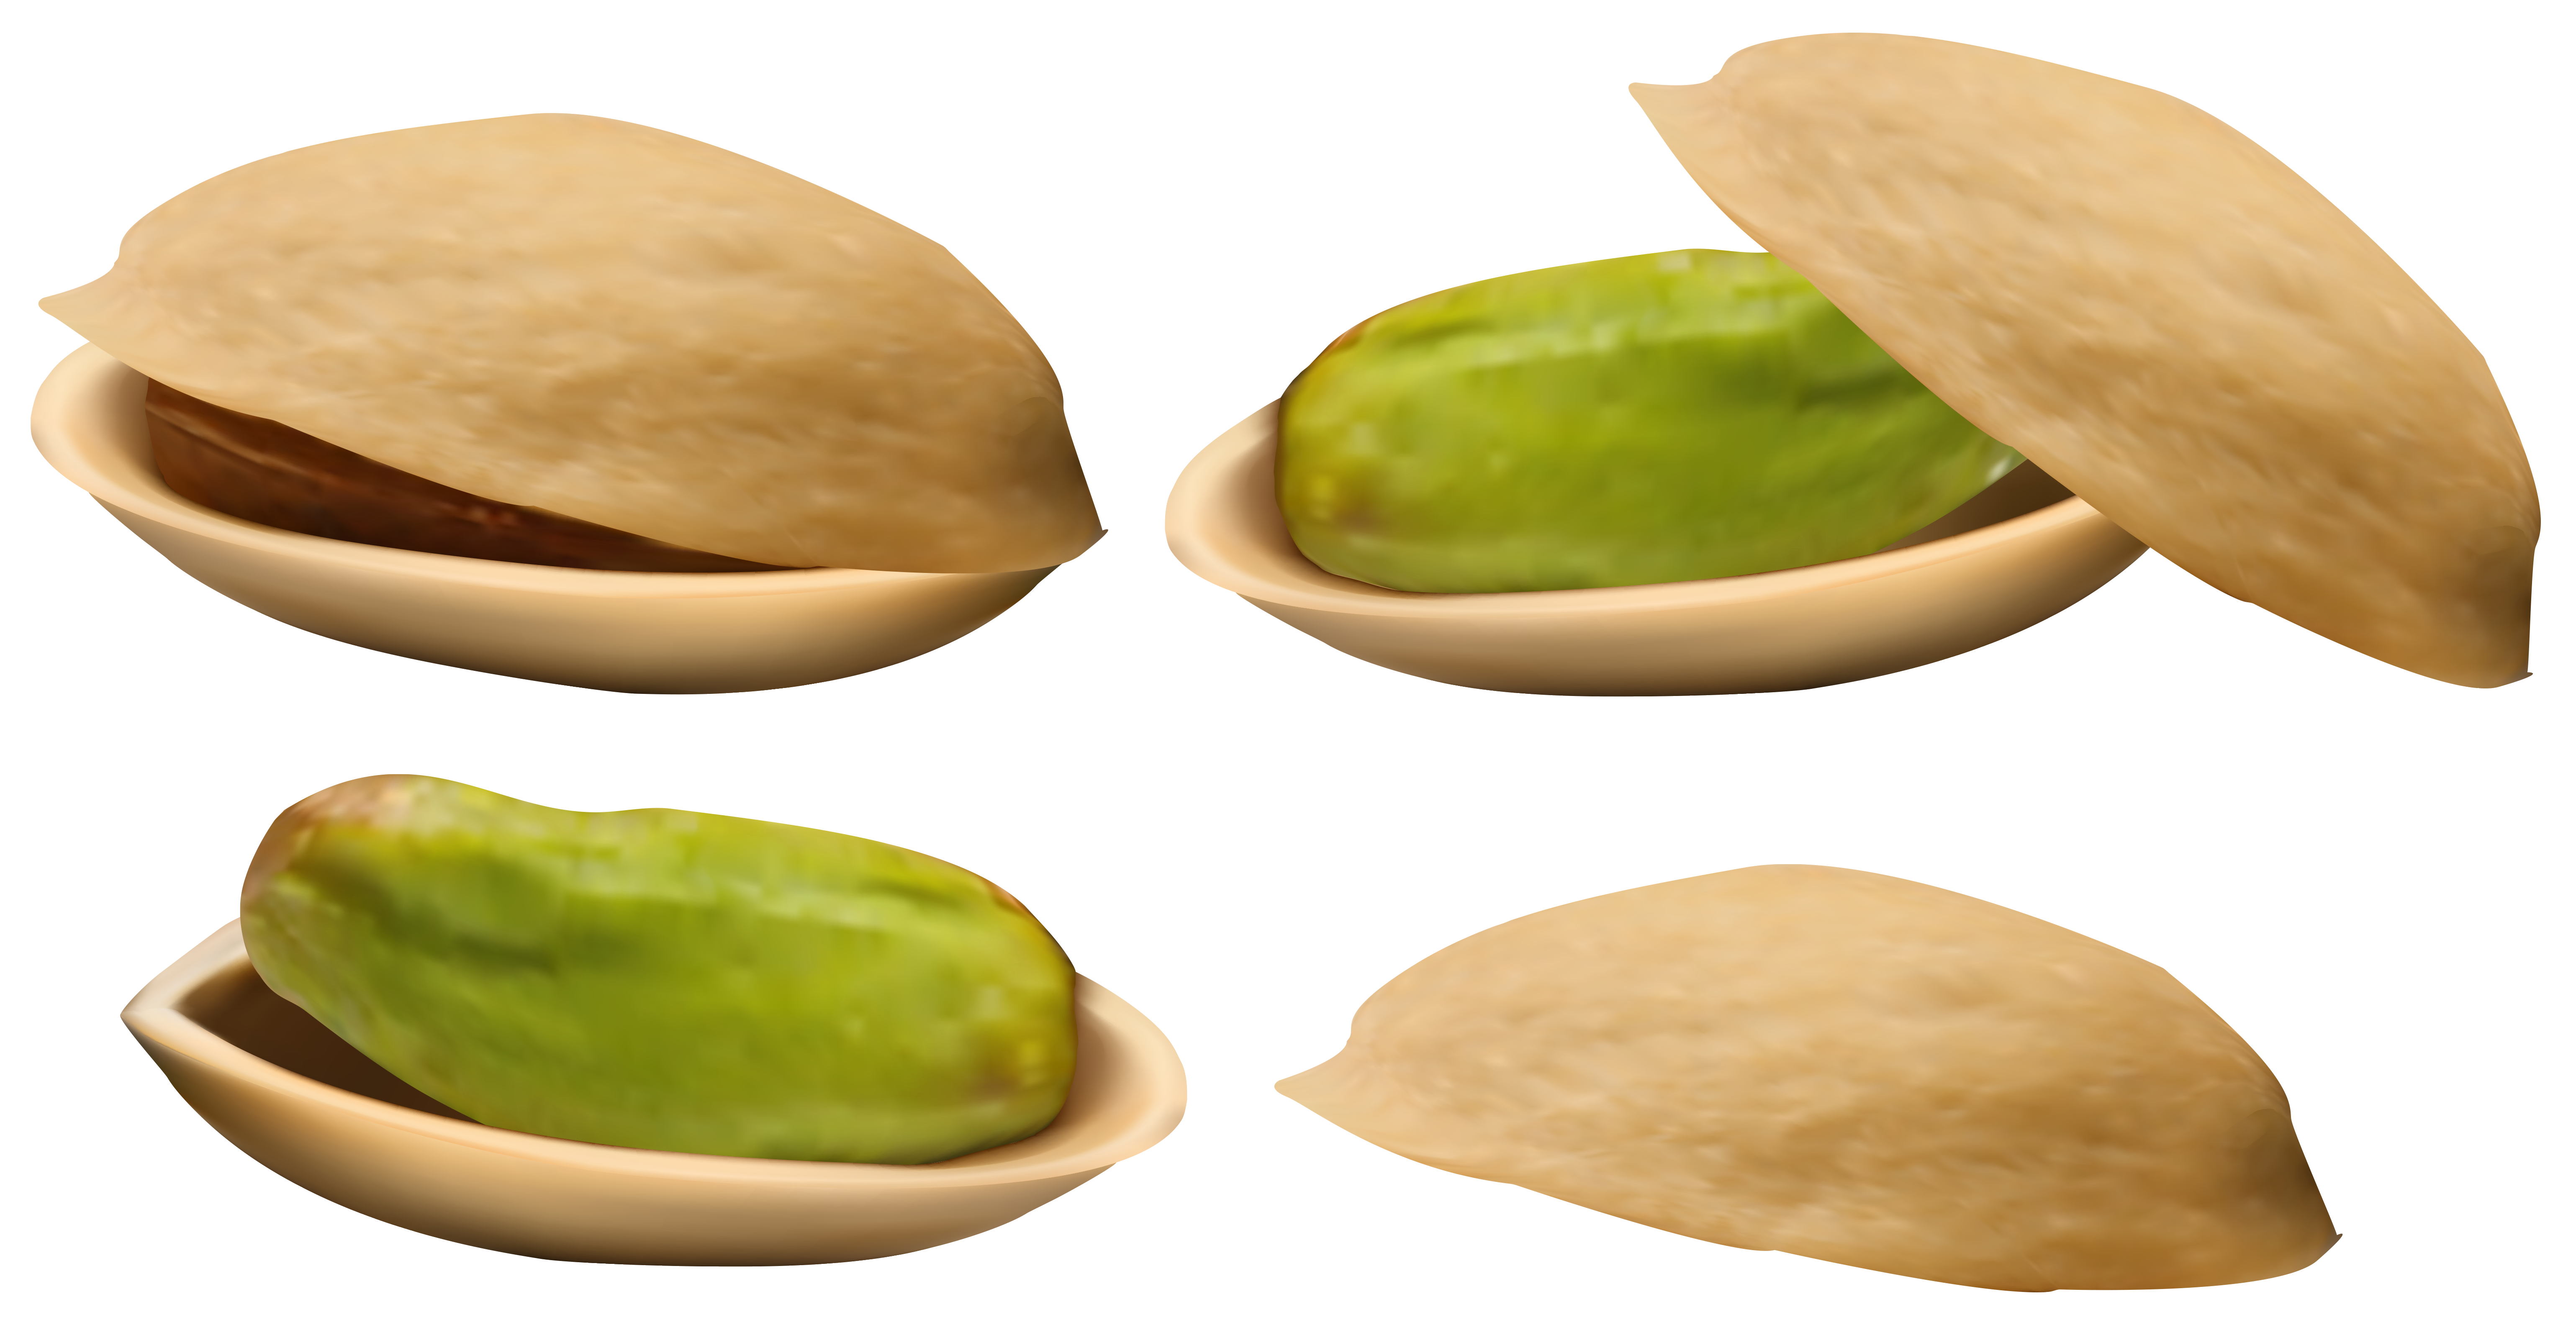 Pistachio png image gallery. Nuts clipart different seed